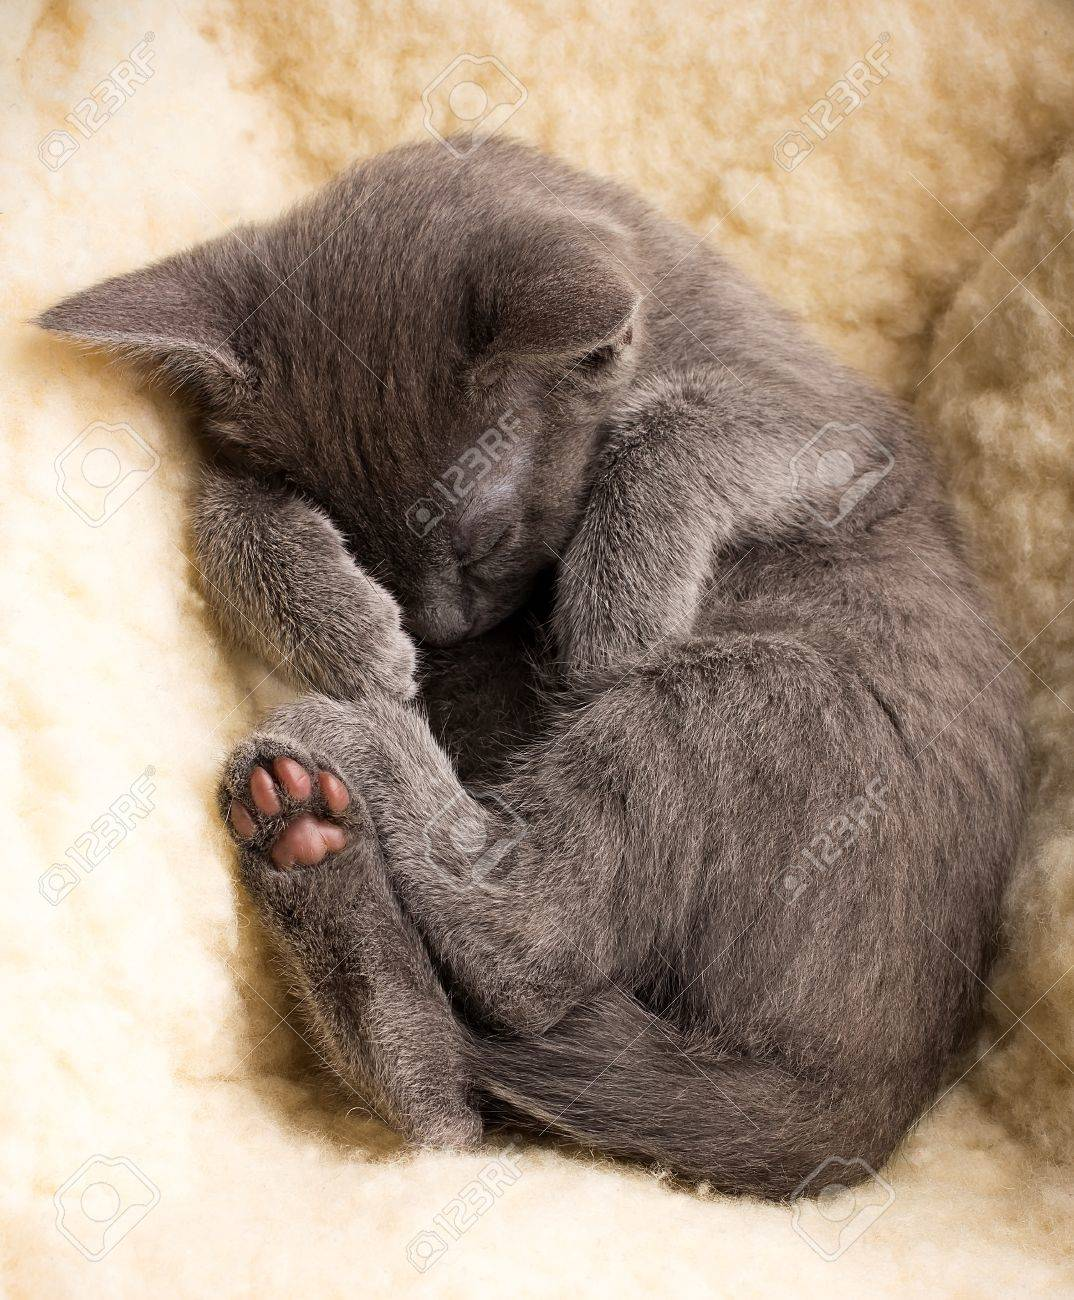 Kitten Sleeping Russian Blue Cat Stock Picture And